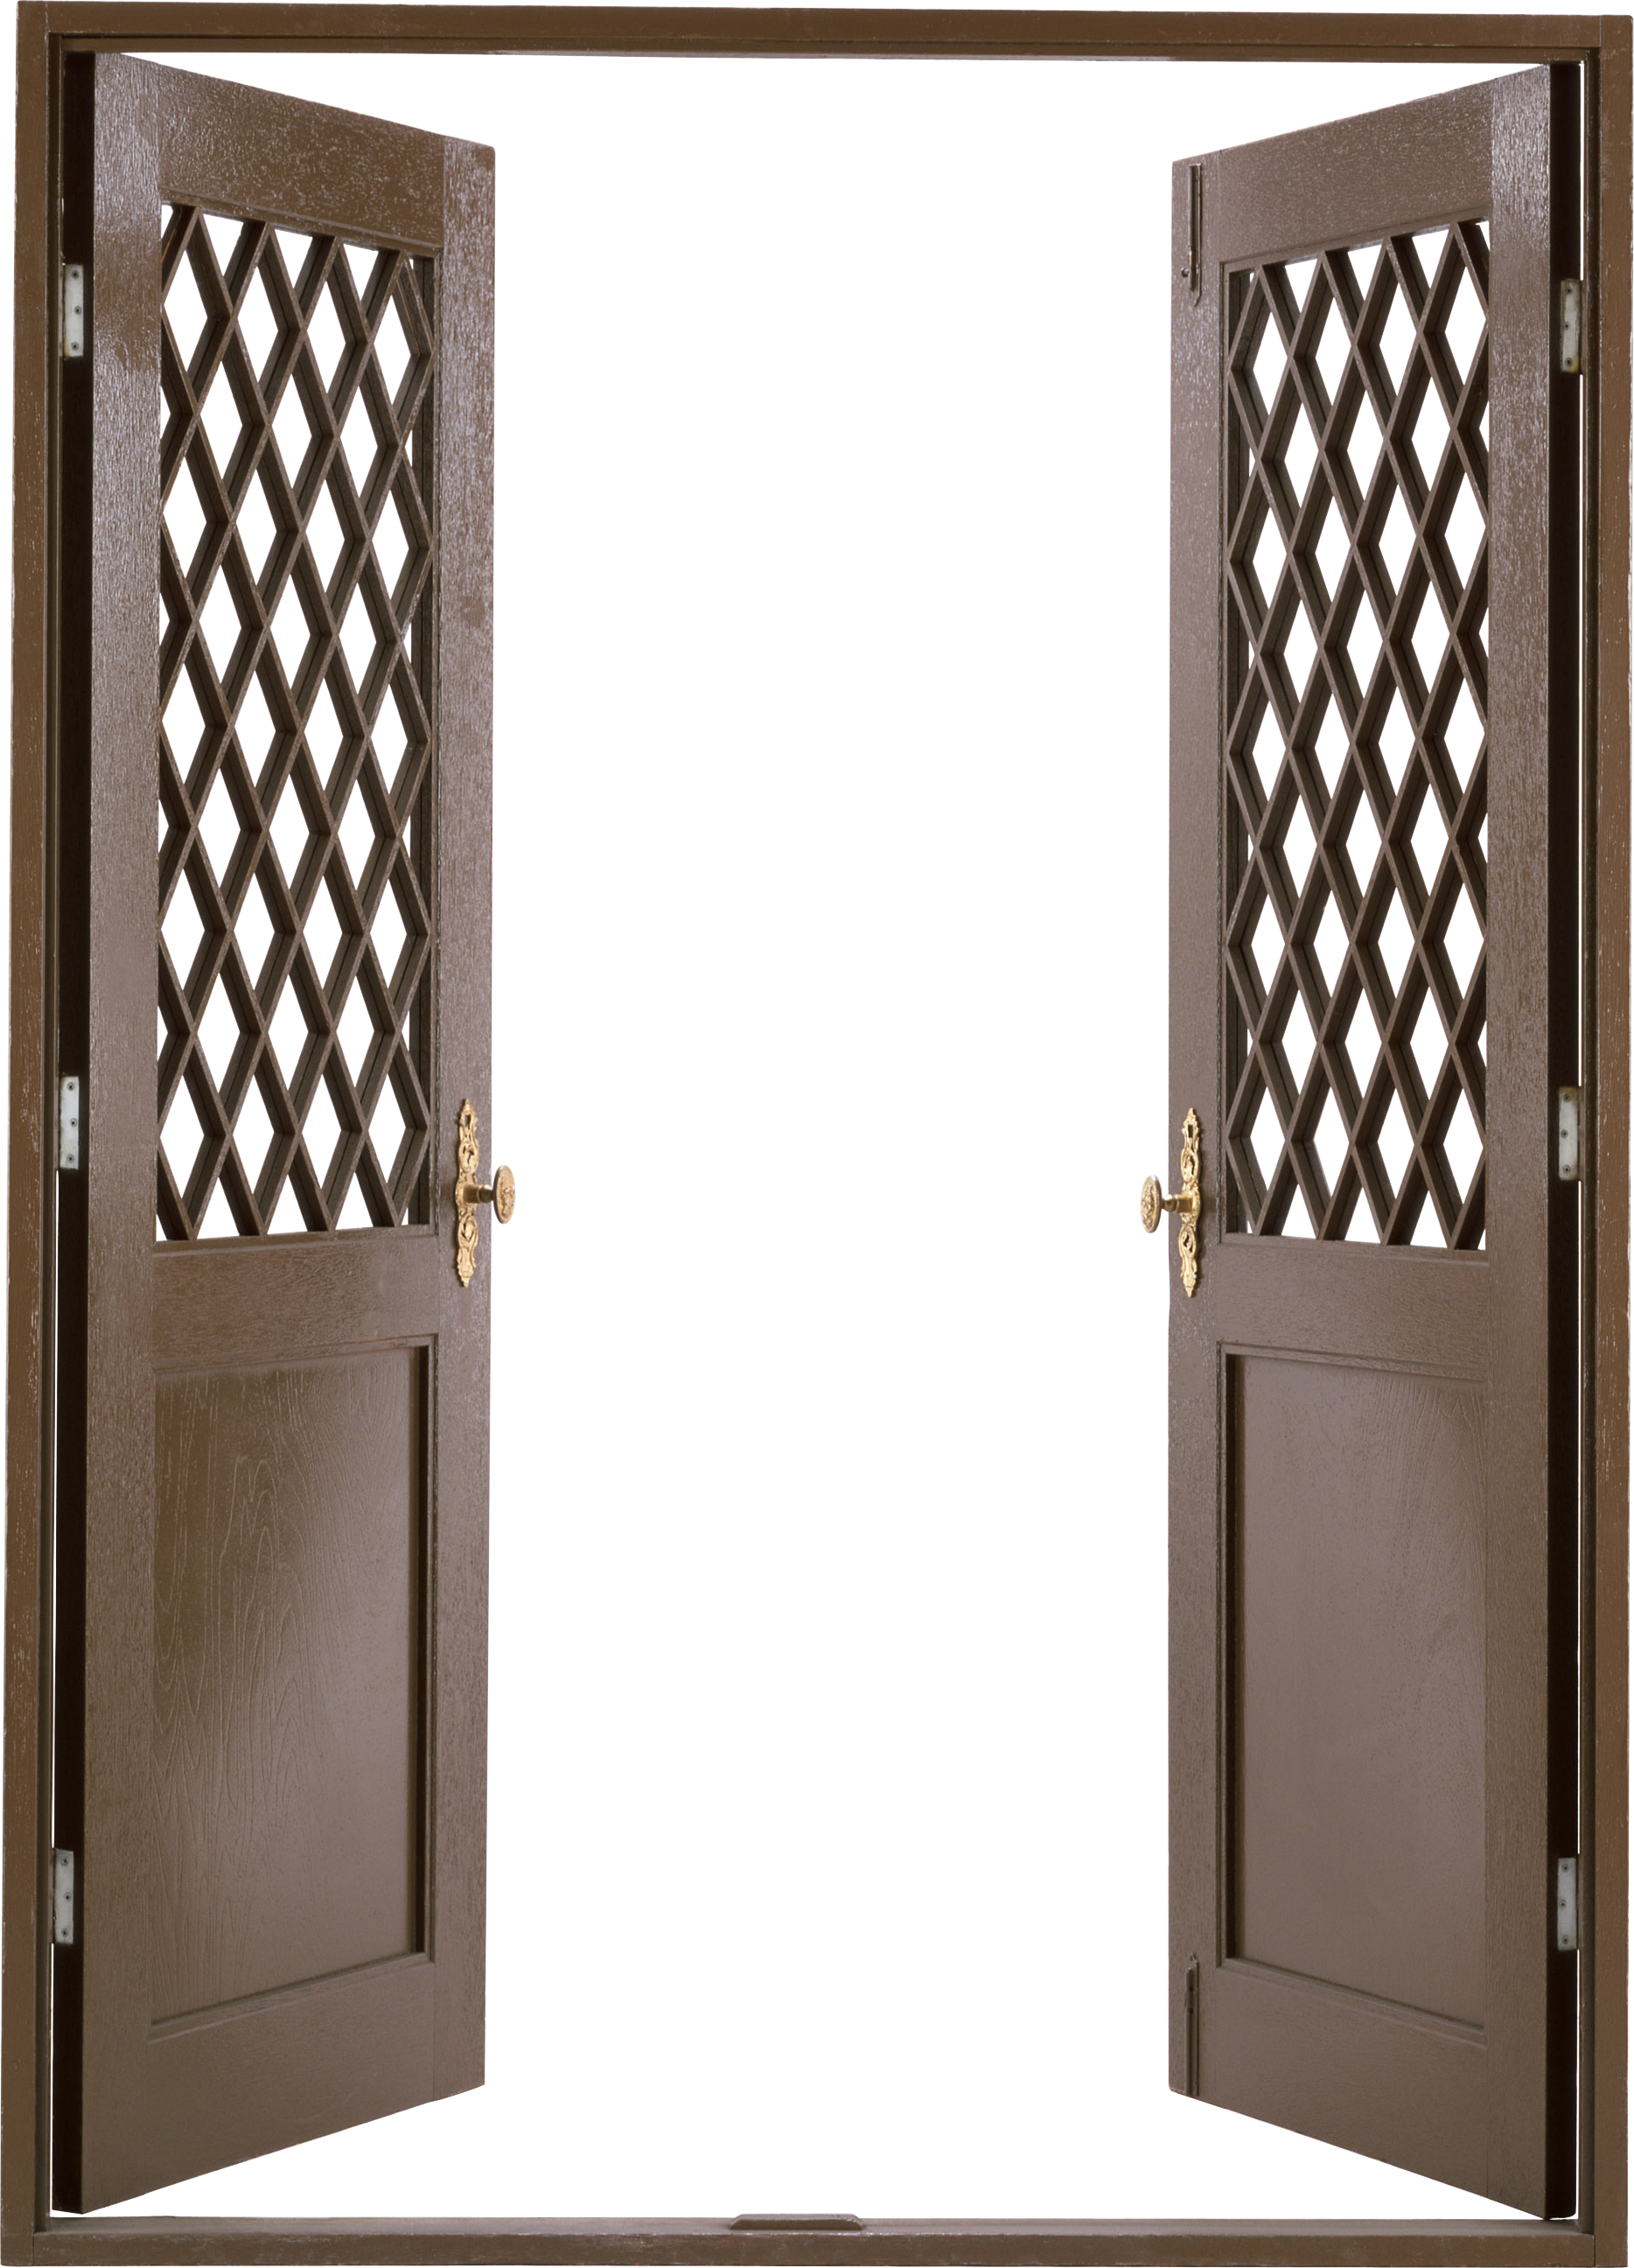 Door png images wood. Gate clipart transparent background